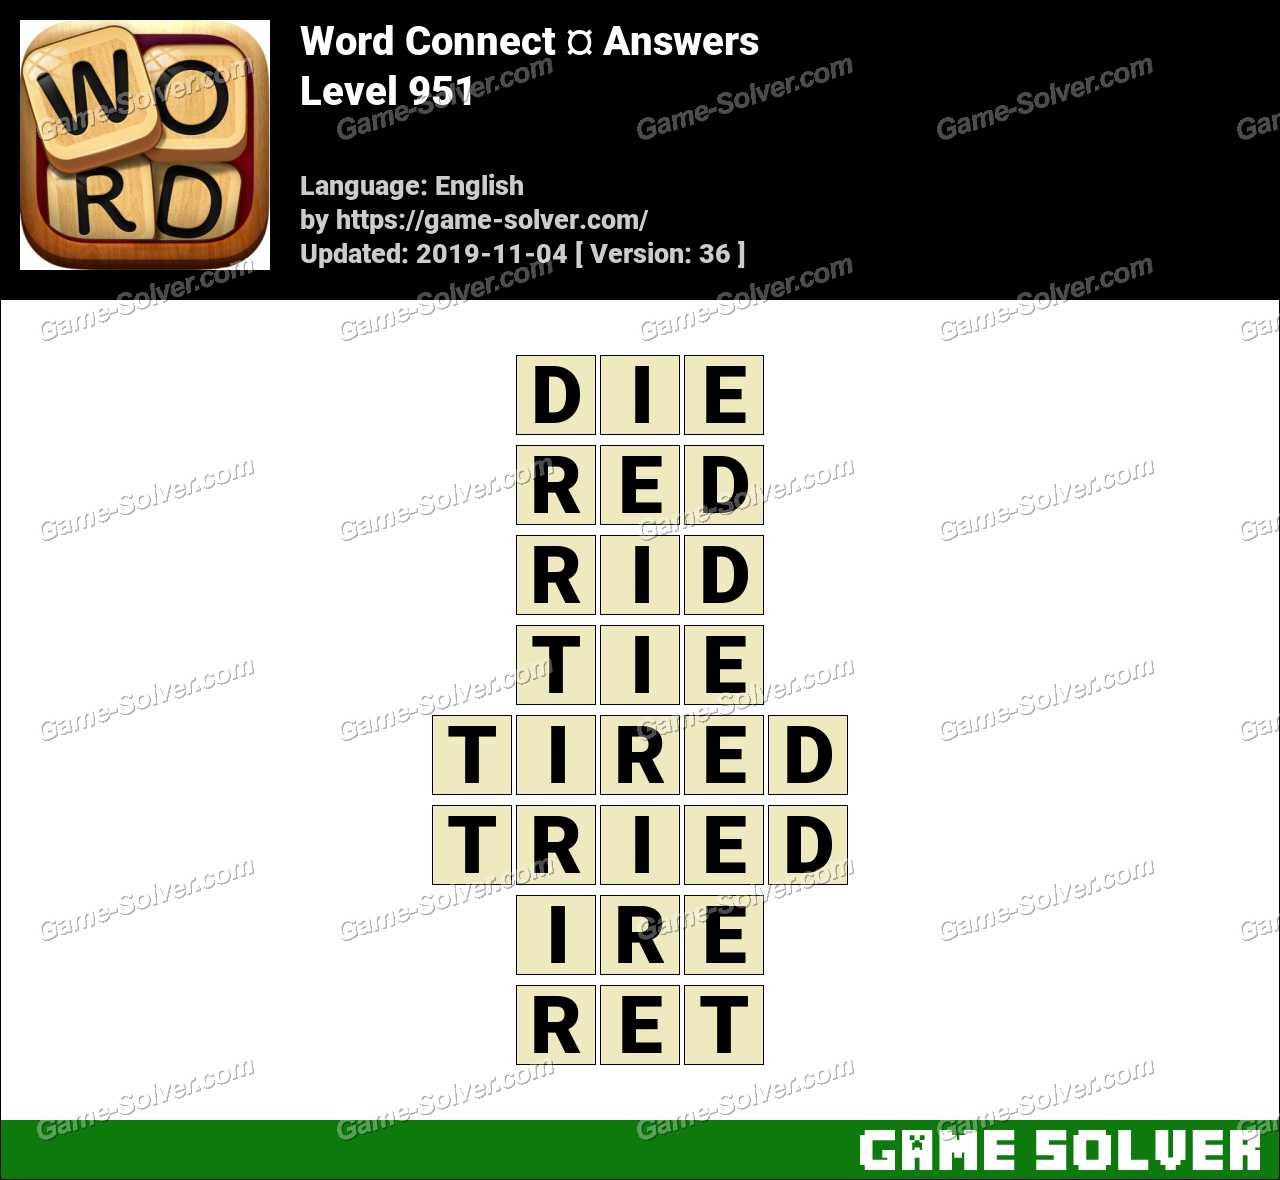 Word Connect Level 951 Answers